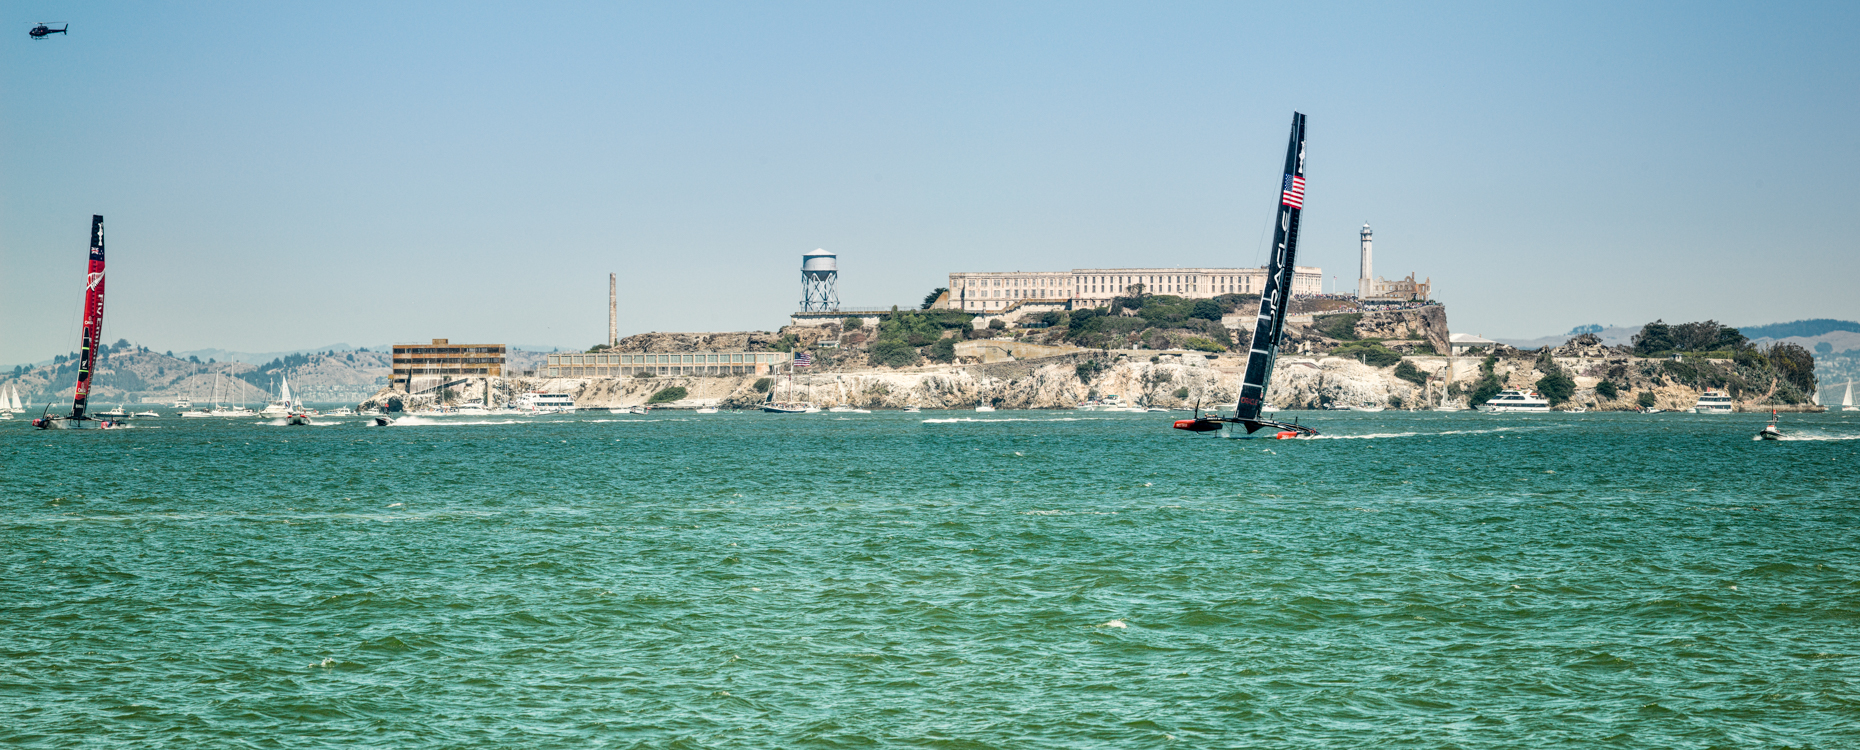 SF_AmericasCup